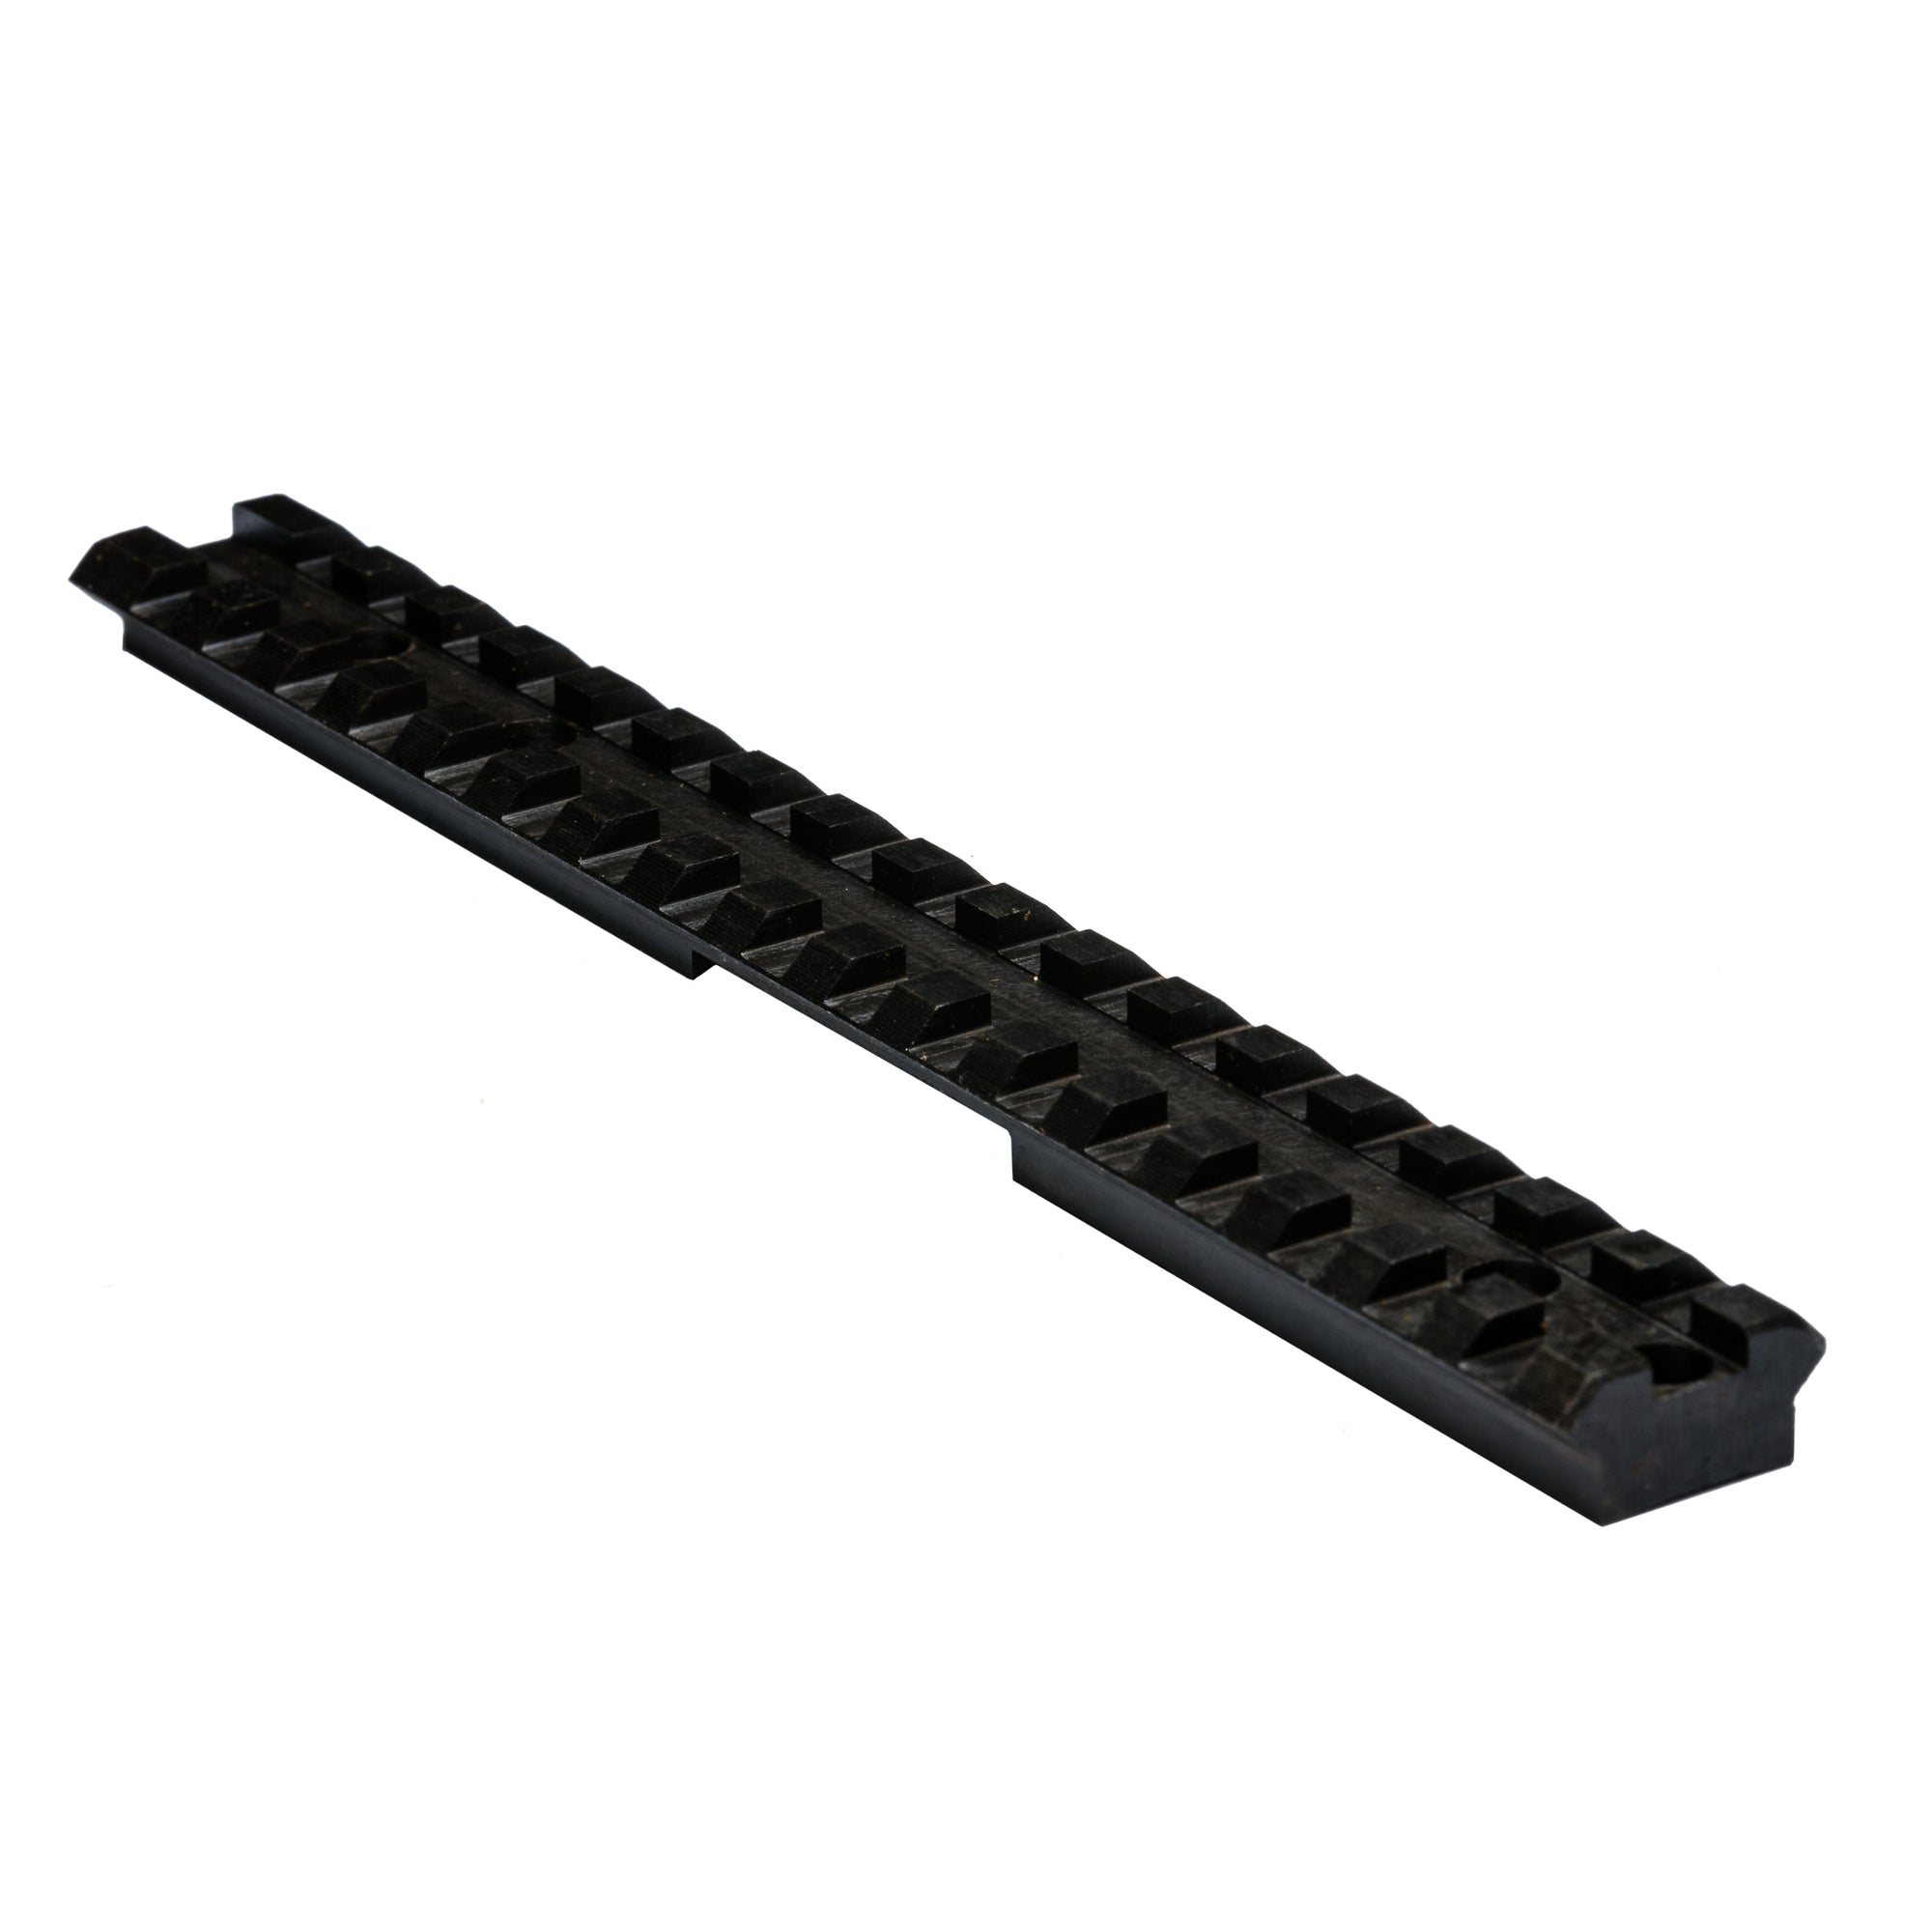 Savage 10 & 110 Flat Picatinny Rail